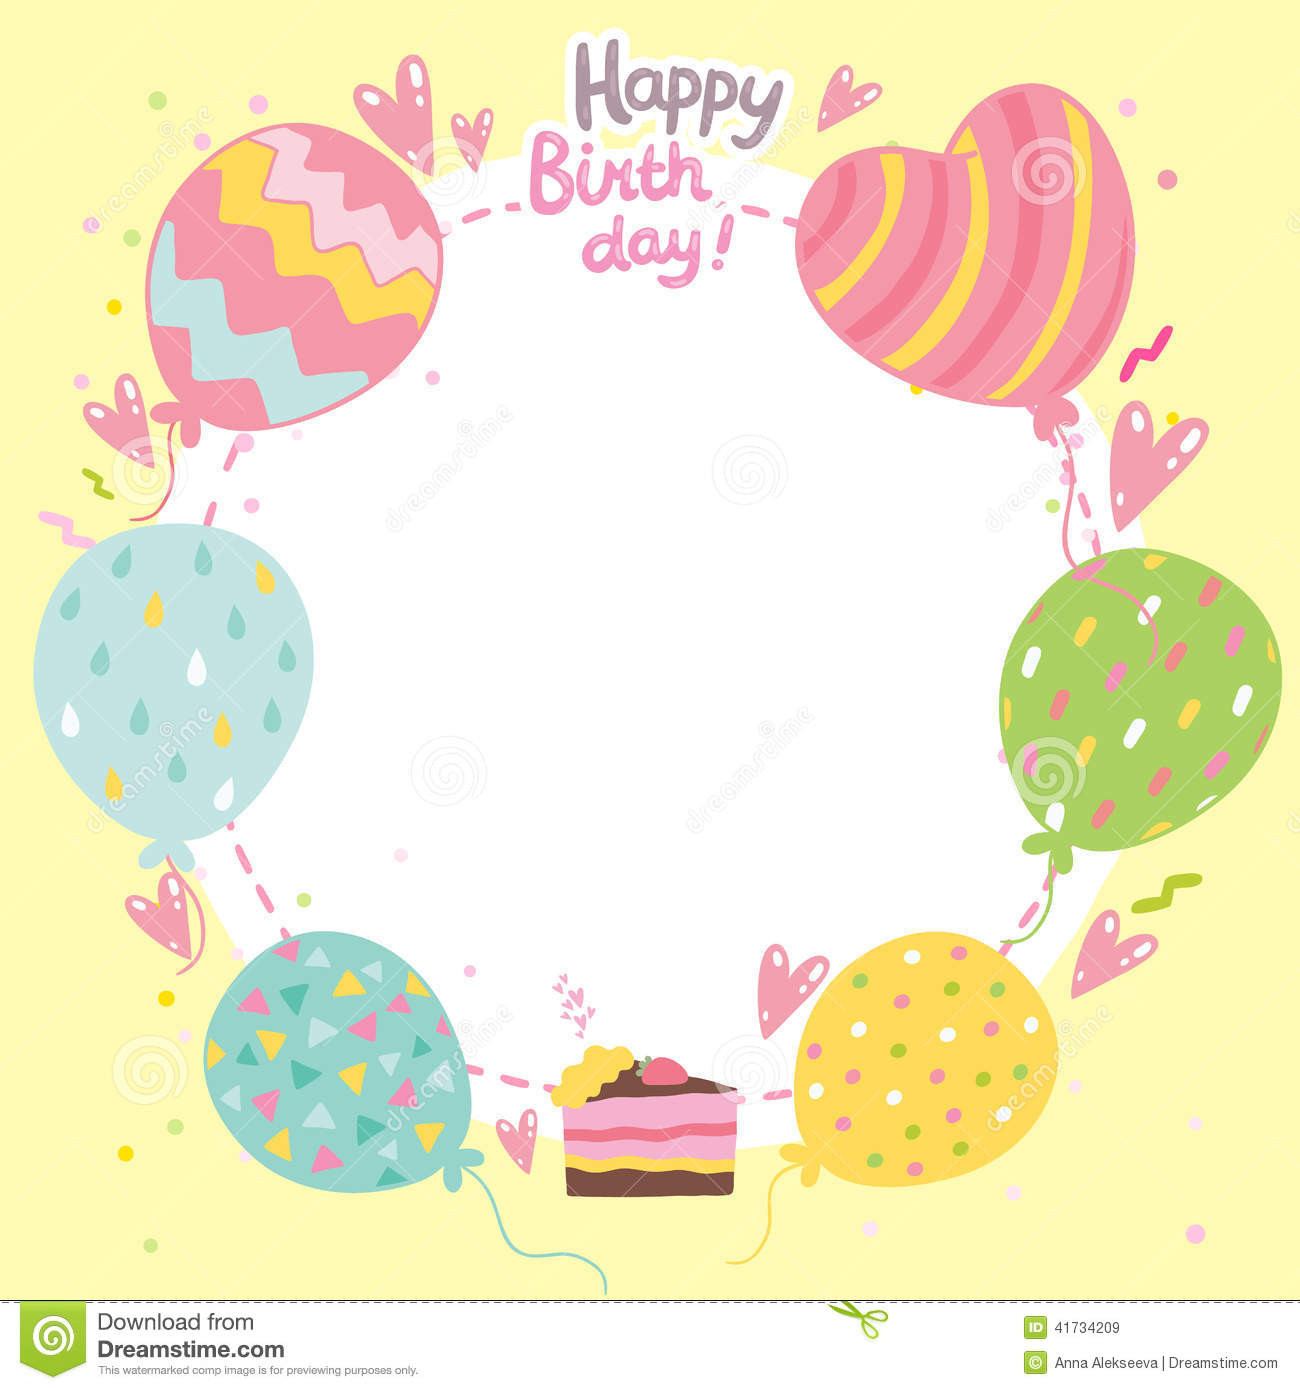 Best ideas about Birthday Card Template . Save or Pin Birthday Card Template Now.